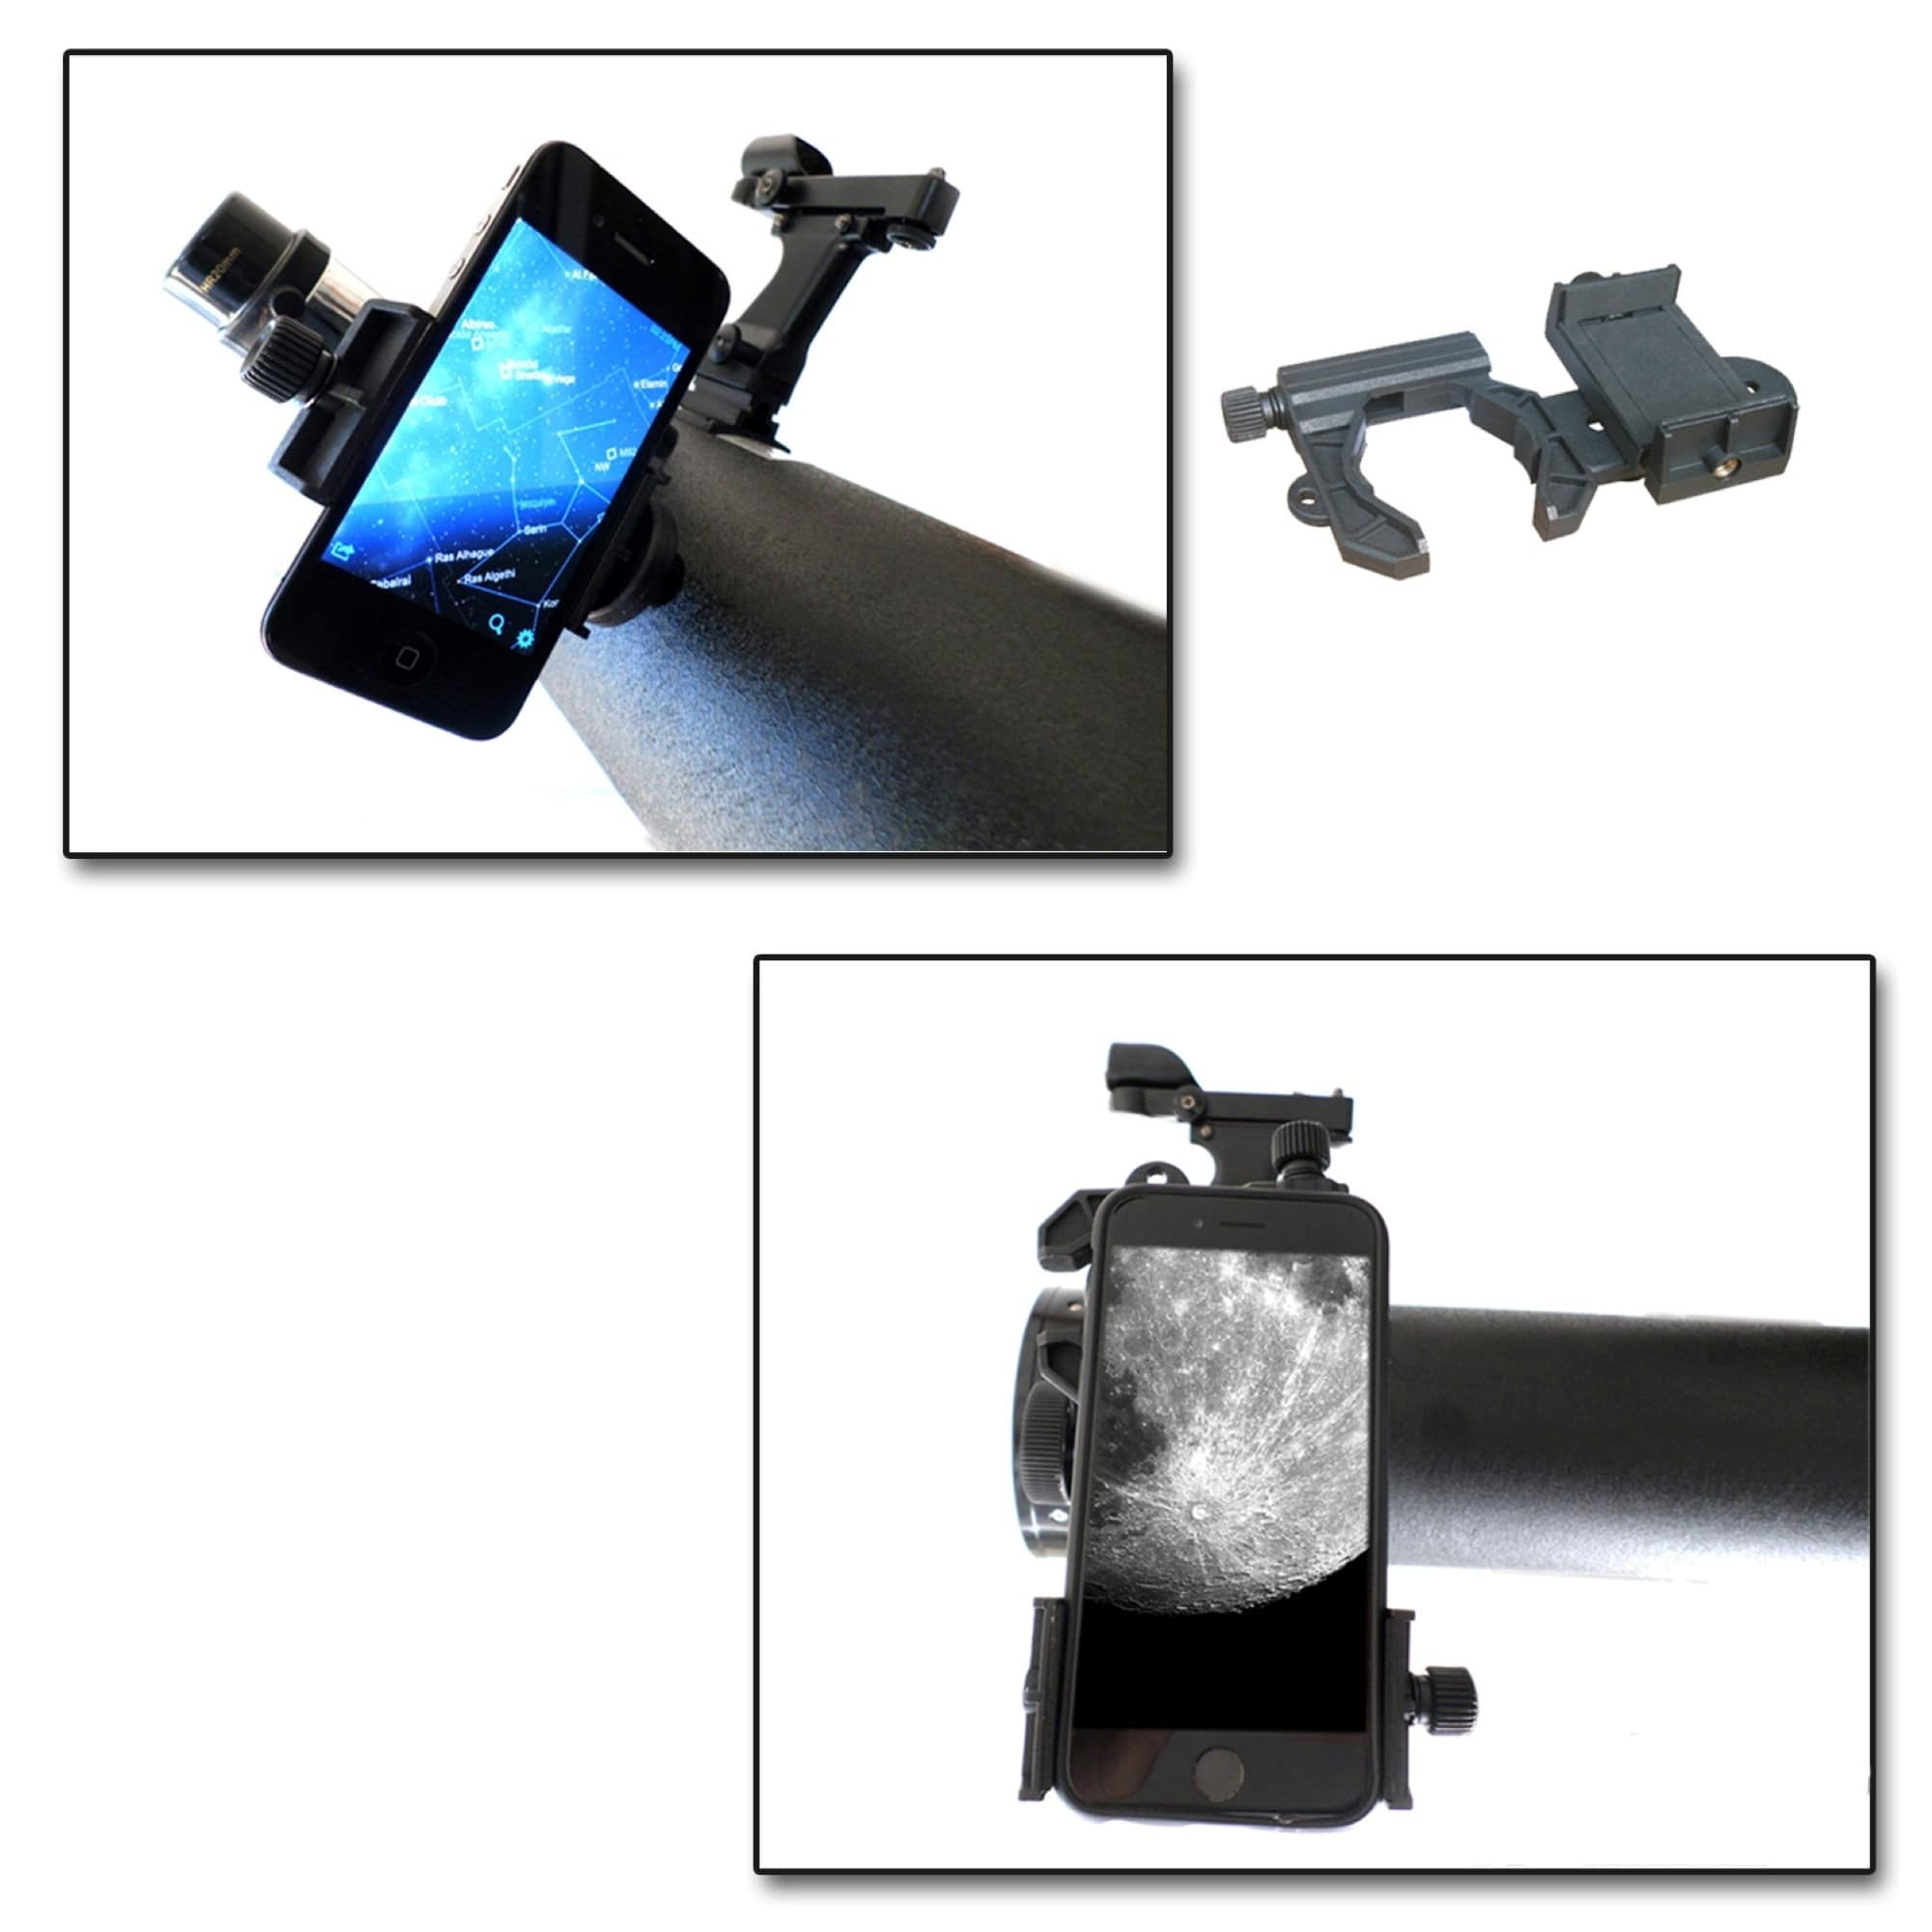 Galileo 500mm X 80mm Table Top Dobsonian Telescope with Smartphone Photo//Video Adapter